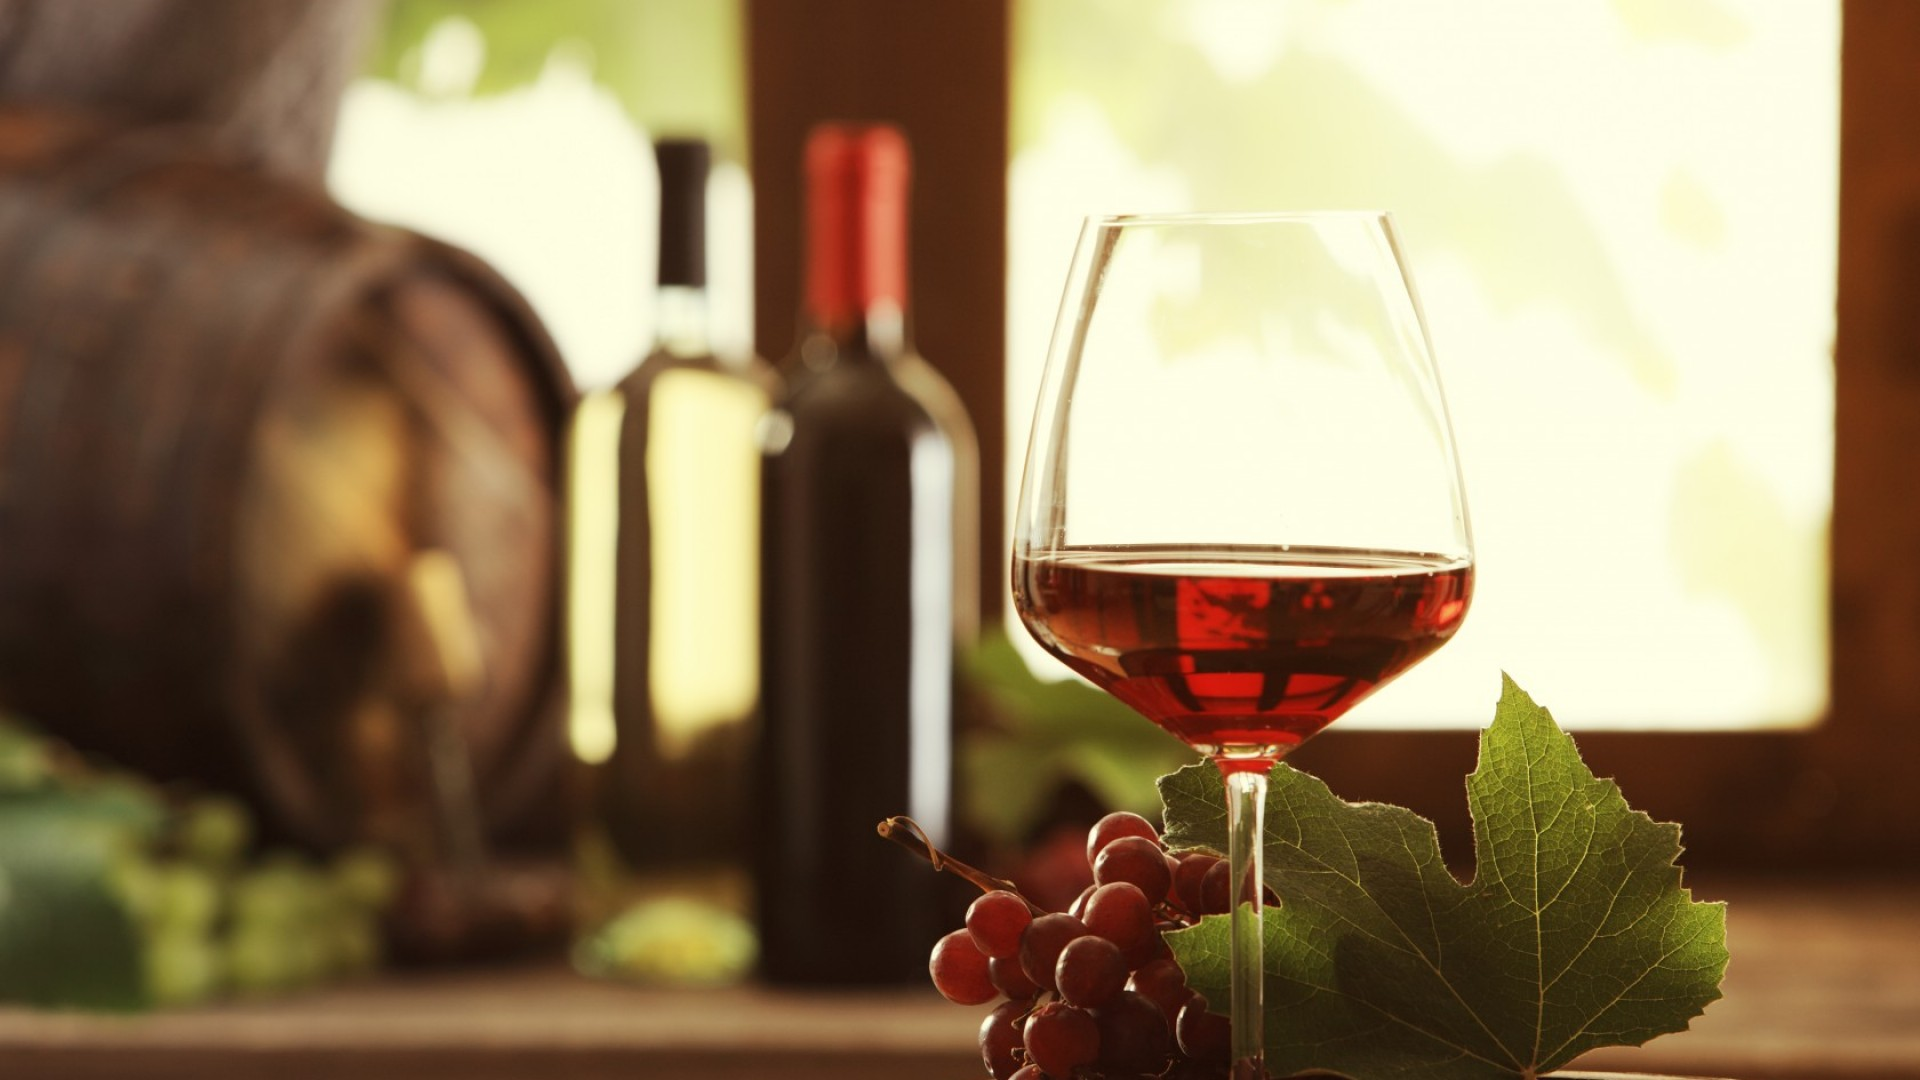 wallpaper wine drink alcohol grapes leaves food drinks